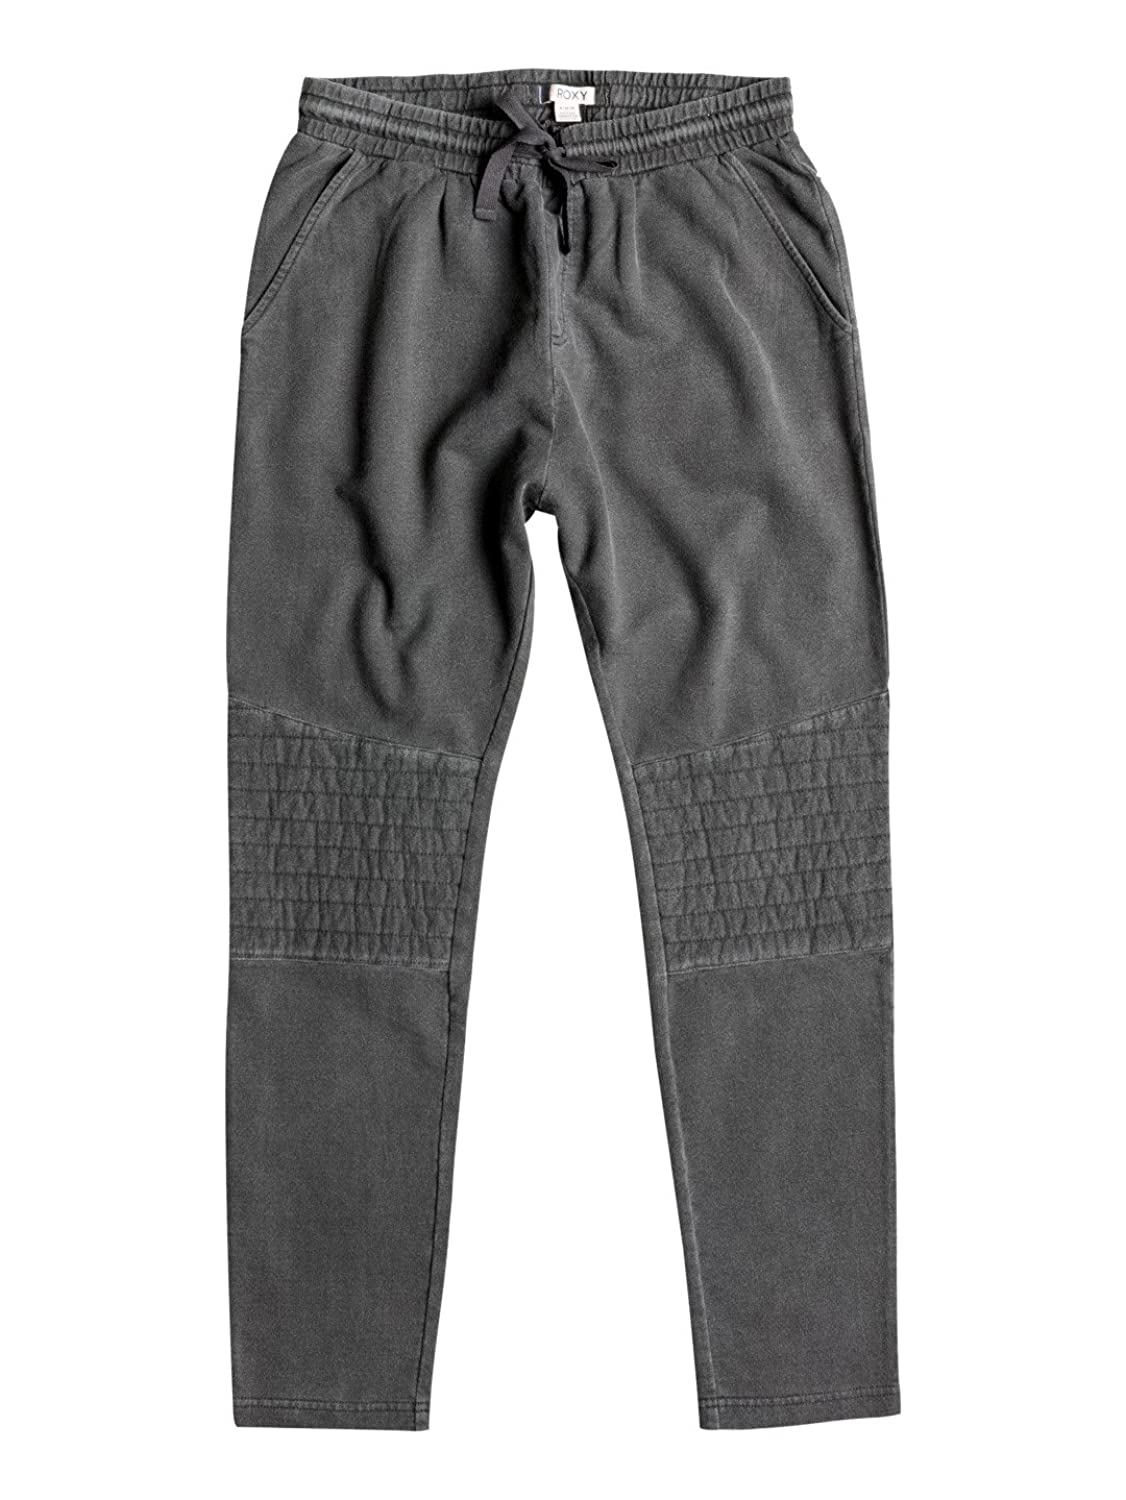 Damen Jogginghose Roxy Bay Night Jogging Pants